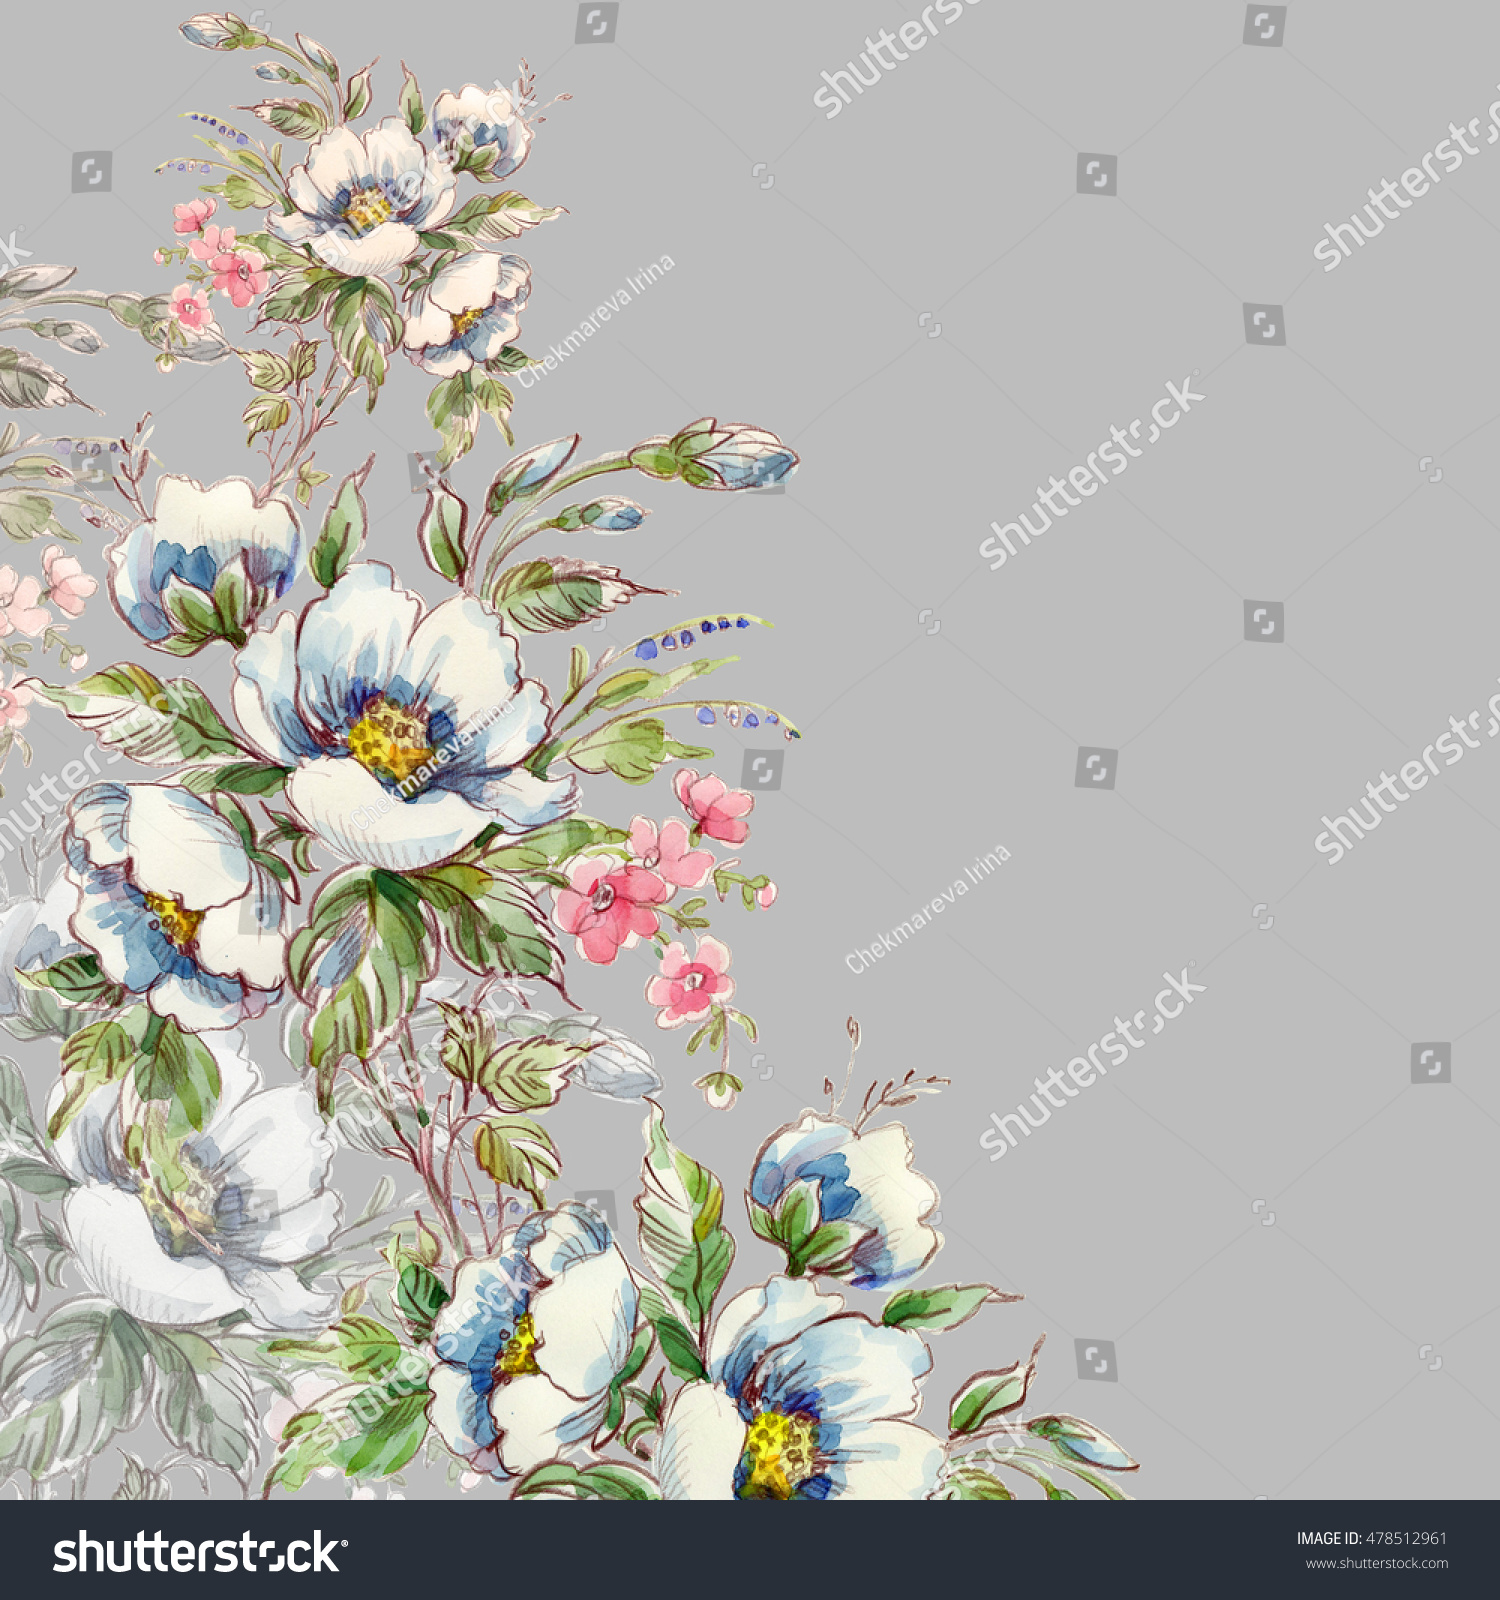 Floral watercolor background bouquet wild flowers 2 stock floral watercolor background bouquet of wild flowers 2 beautiful background of sketches pencil and izmirmasajfo